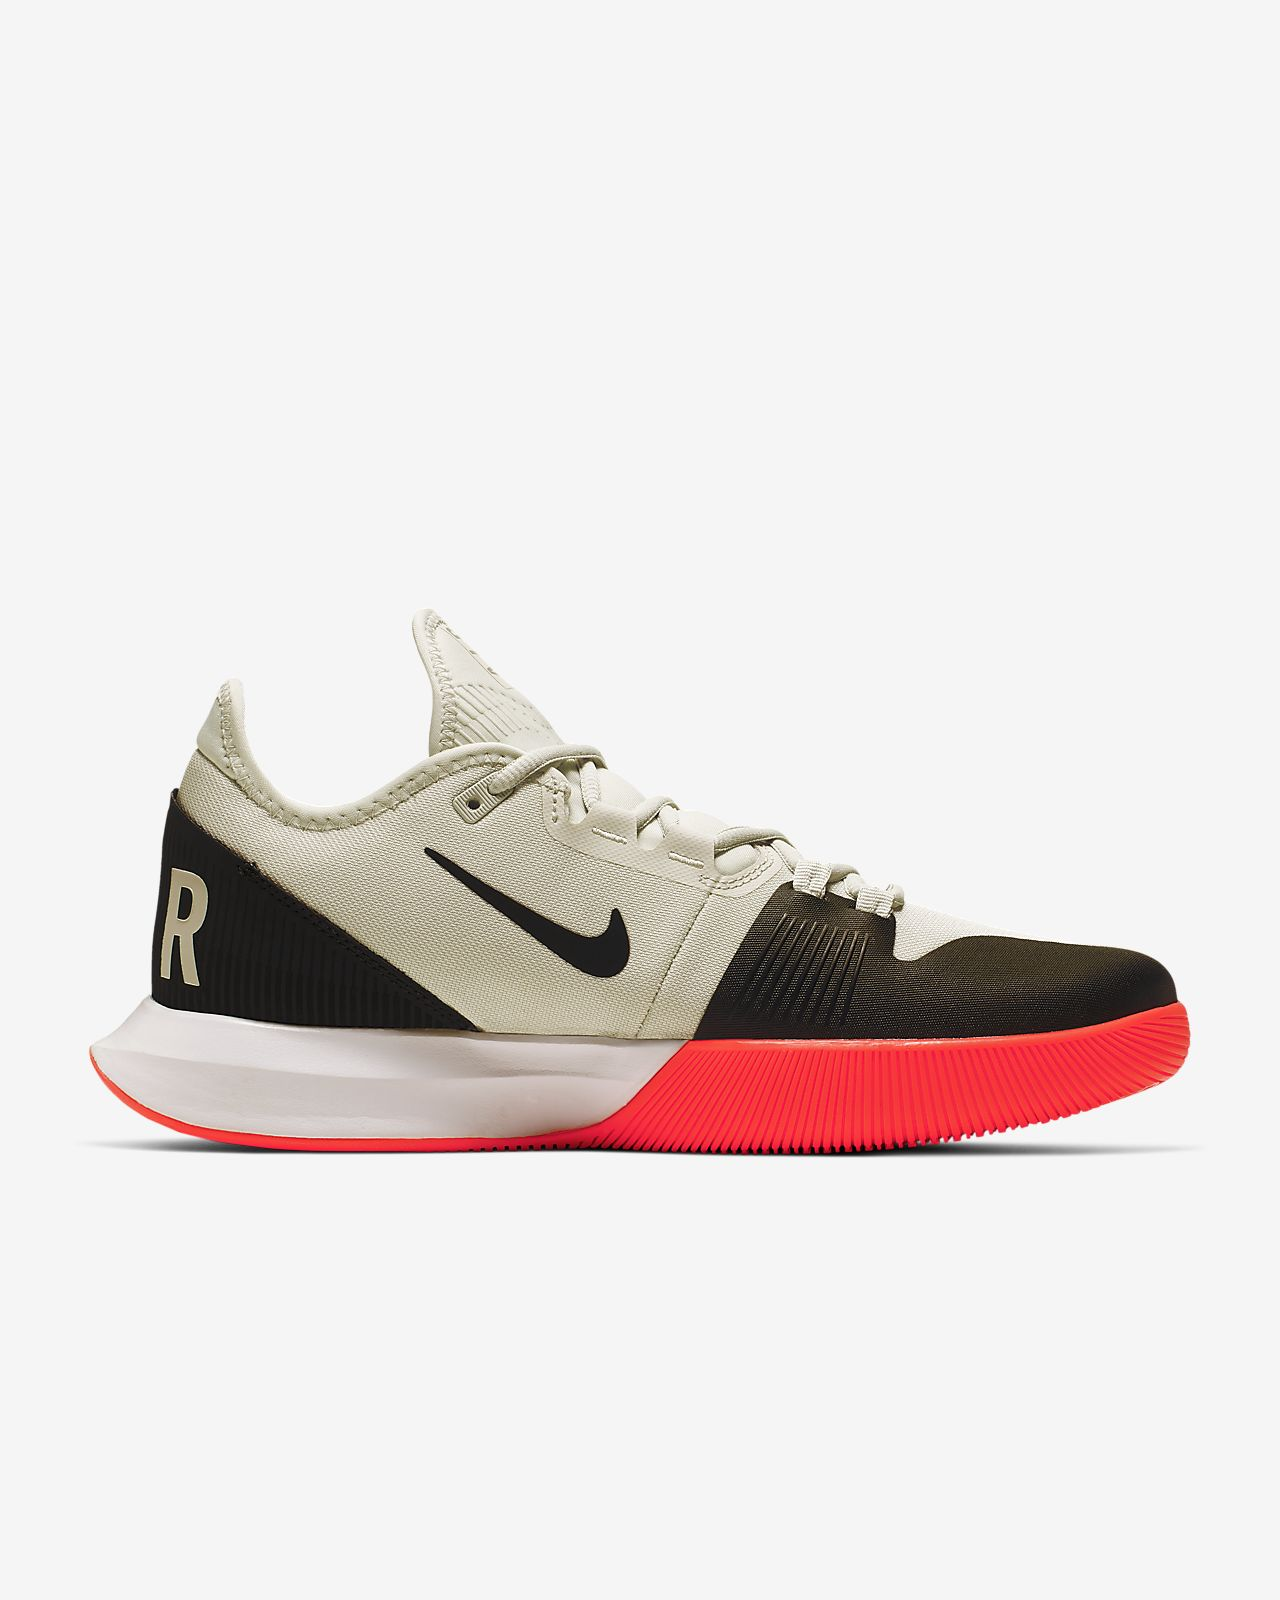 Chaussures Homme Nike Air Max Wildcard Blanc Rouge 2020 Toutes surfaces